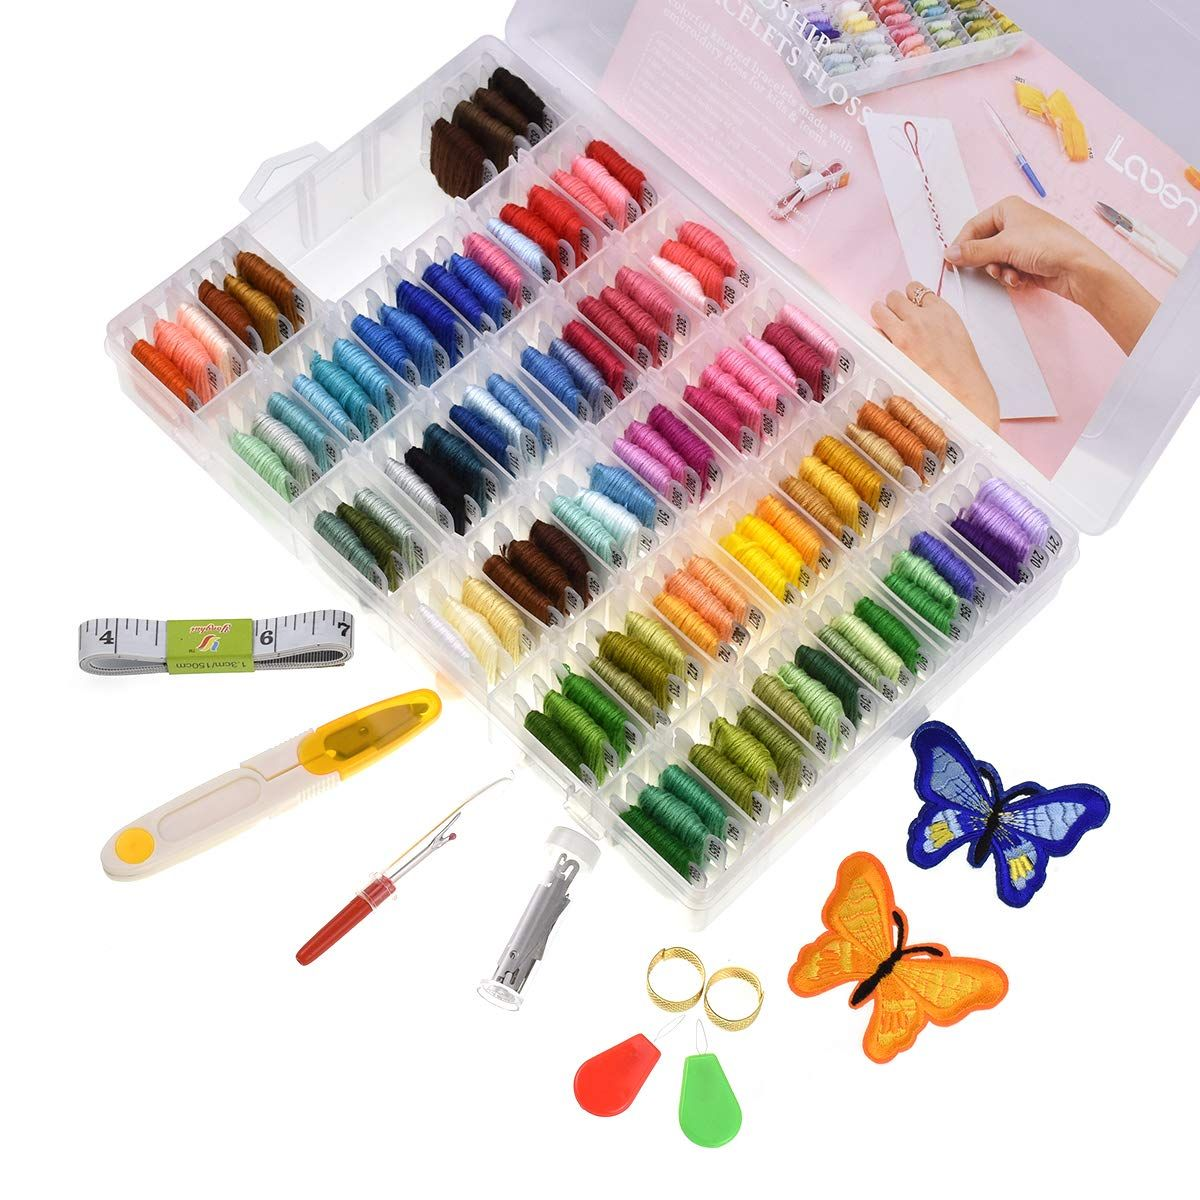 Looen 100 Colors Embroidery Floss With Organizer Storage Box